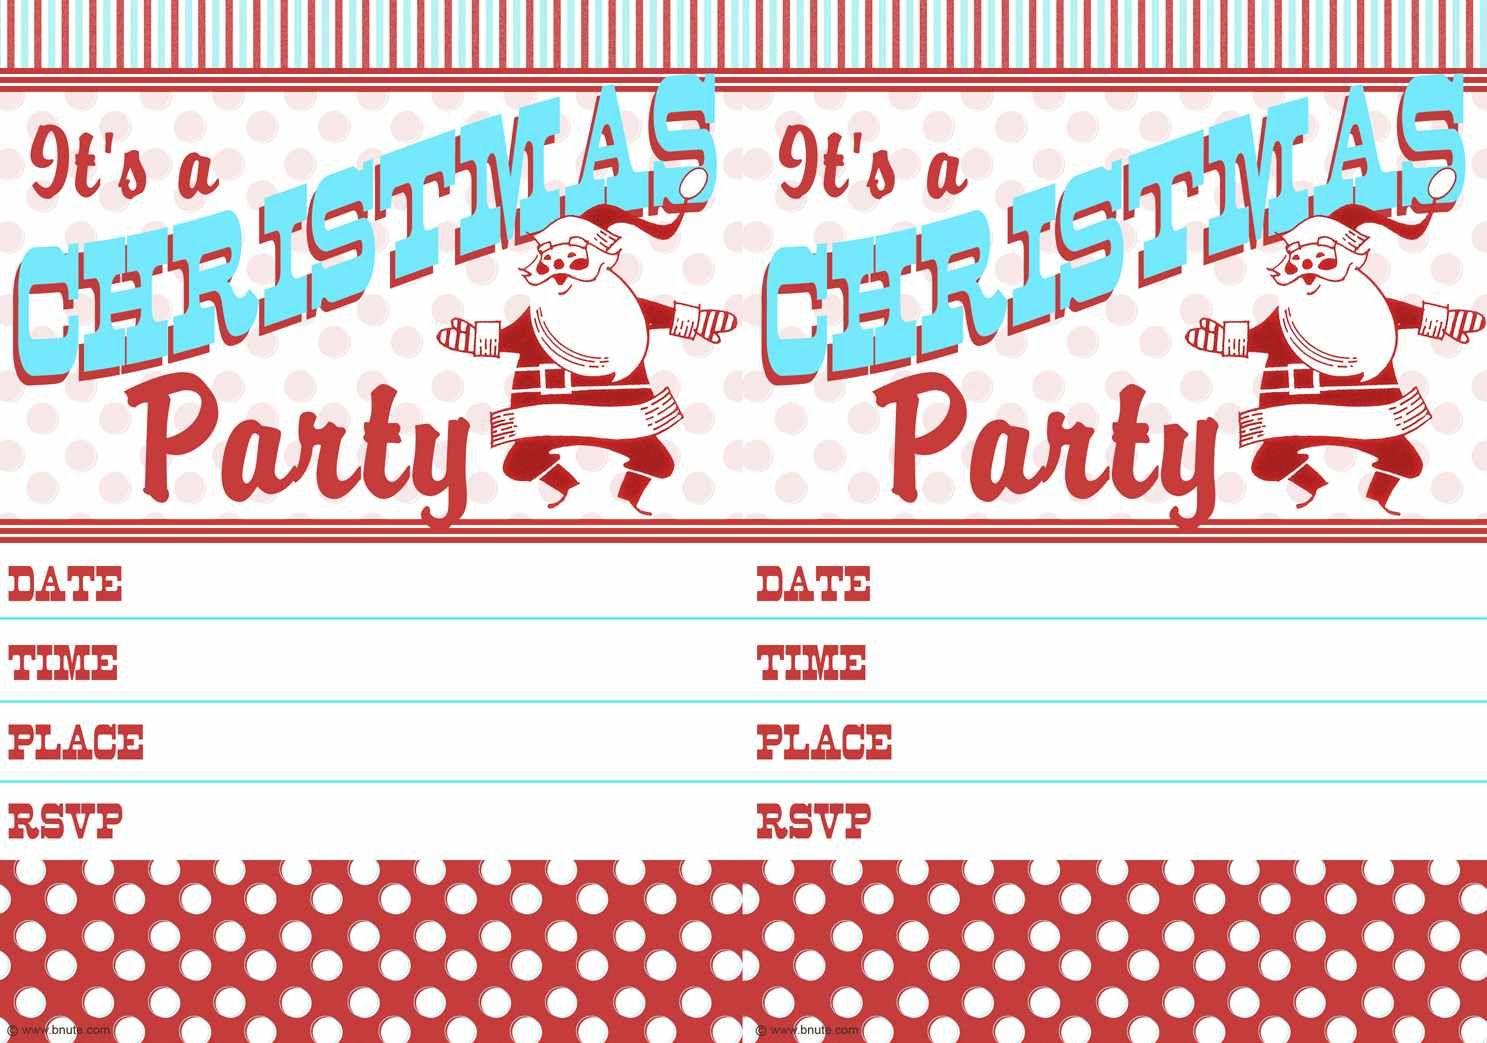 10 Free Christmas Party Invitations That You Can Print - Play Date Invitations Free Printable